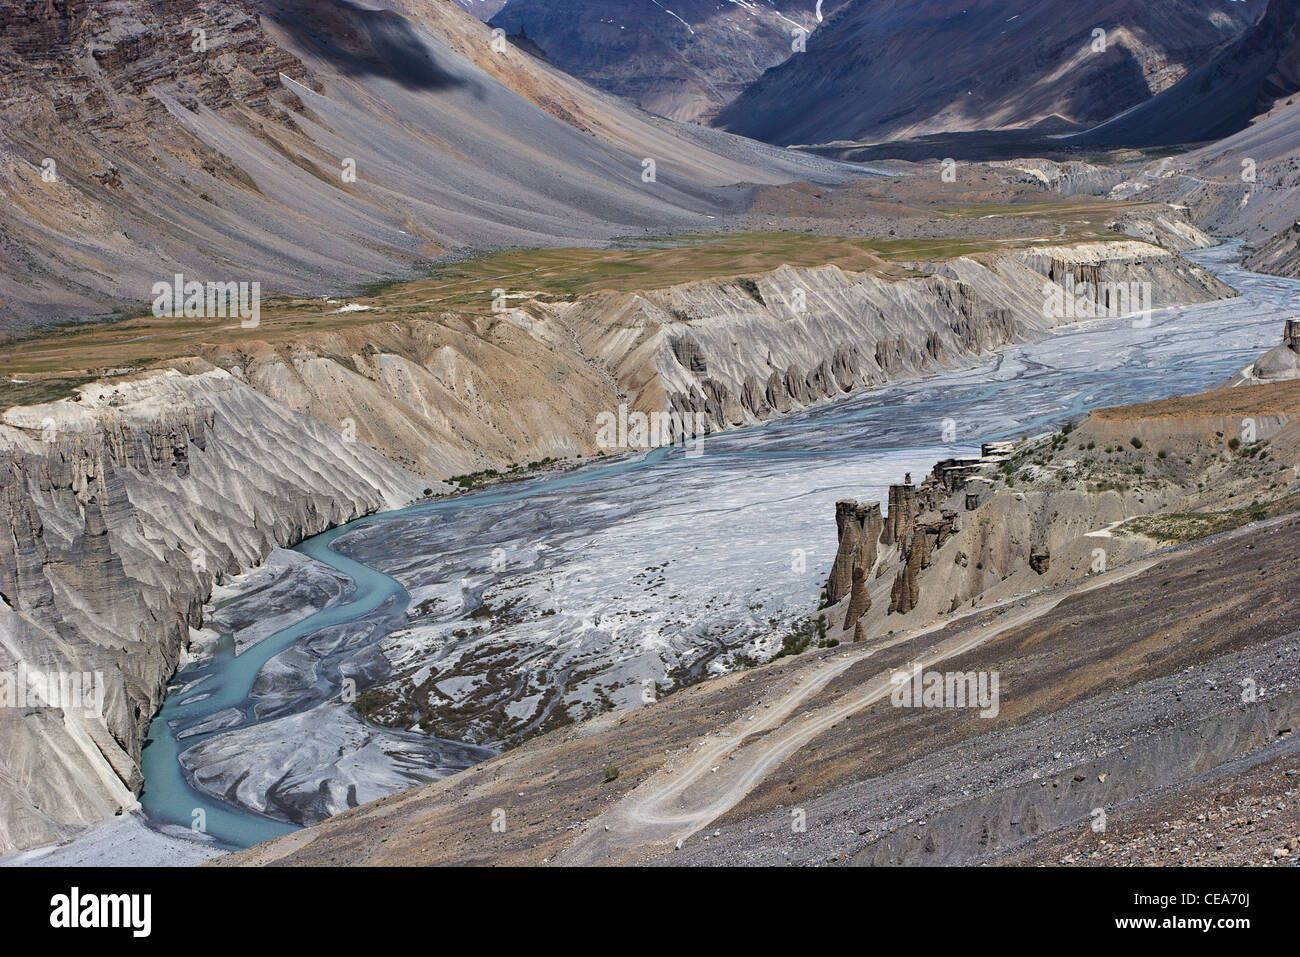 A deep canyon of the Spiti river in the state of Himachal Pradesh, India - Stock Image